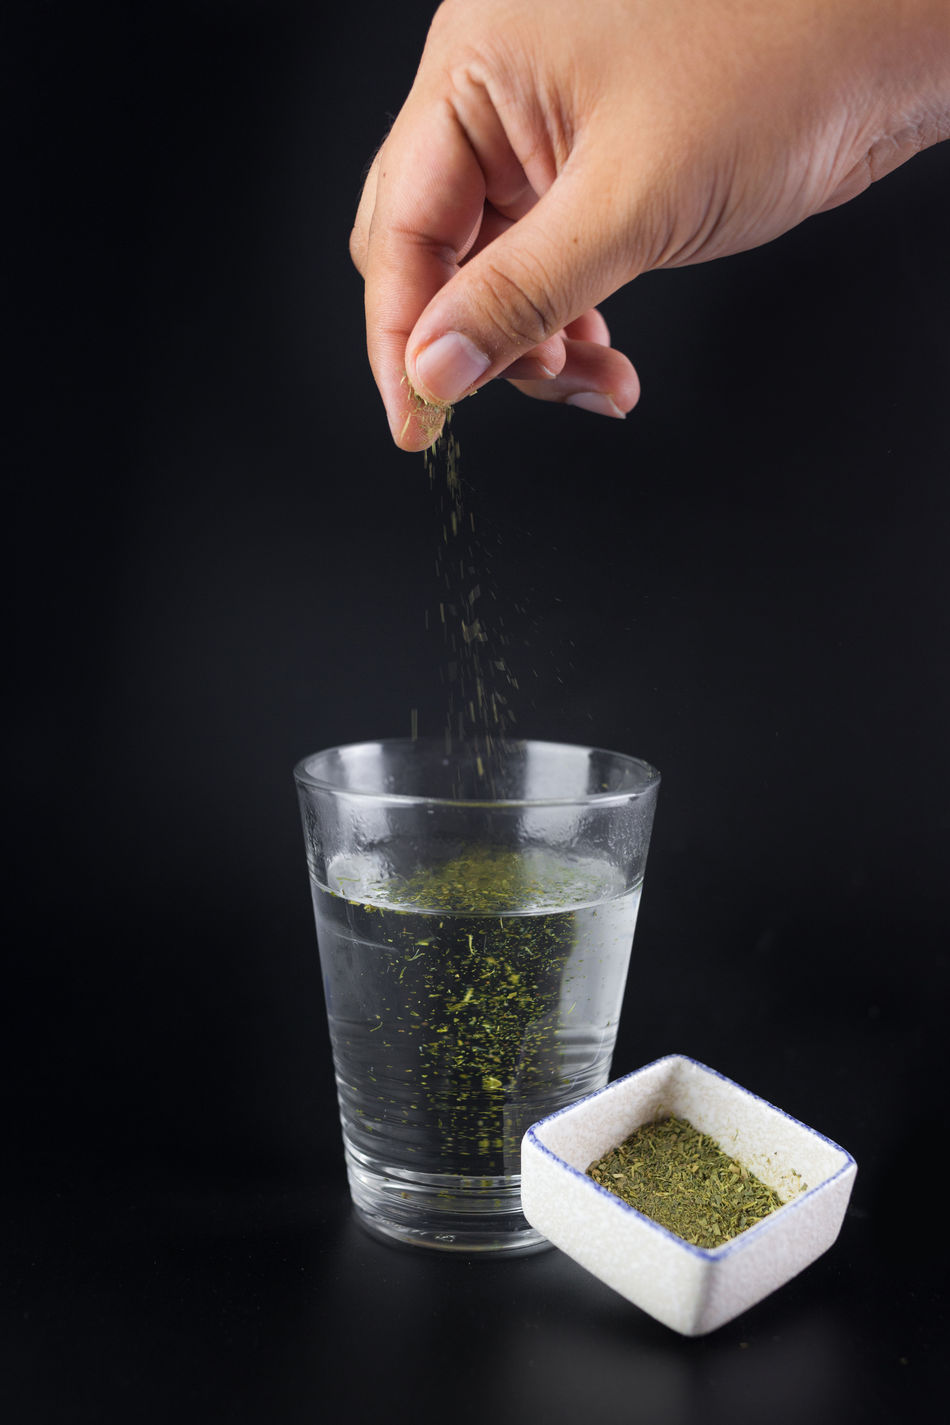 Black Background Dark Background Drinking Glass Green Green Tea Human Hand Motion Product Product Photography Product Shooting Sprinkle Studio Studio Shot